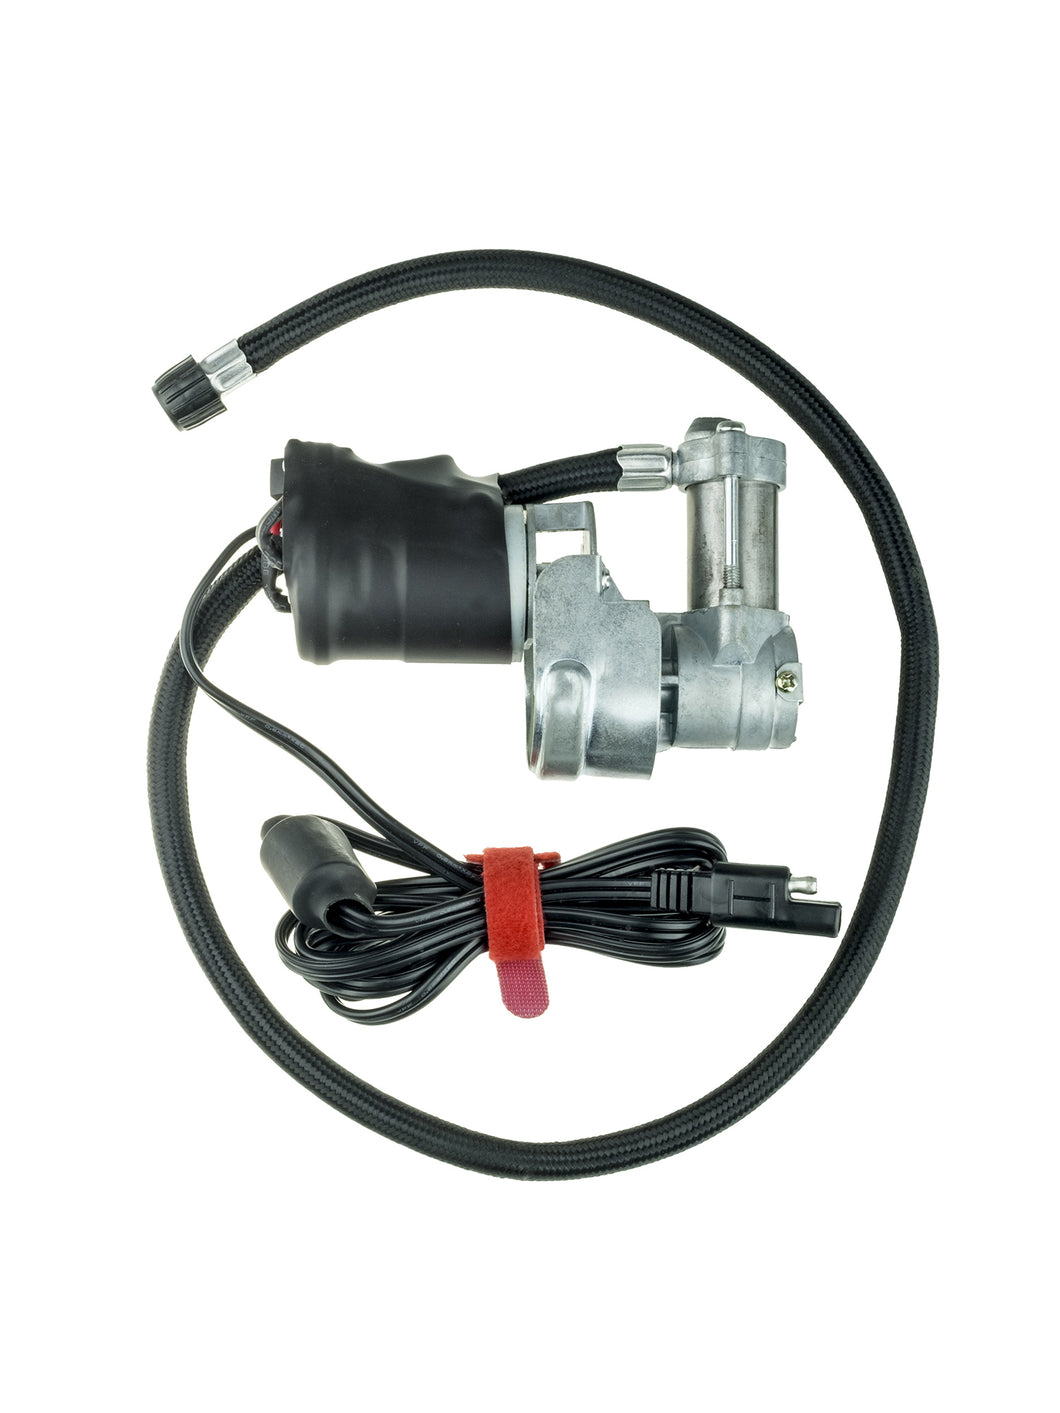 Motopressor Pocket Pump